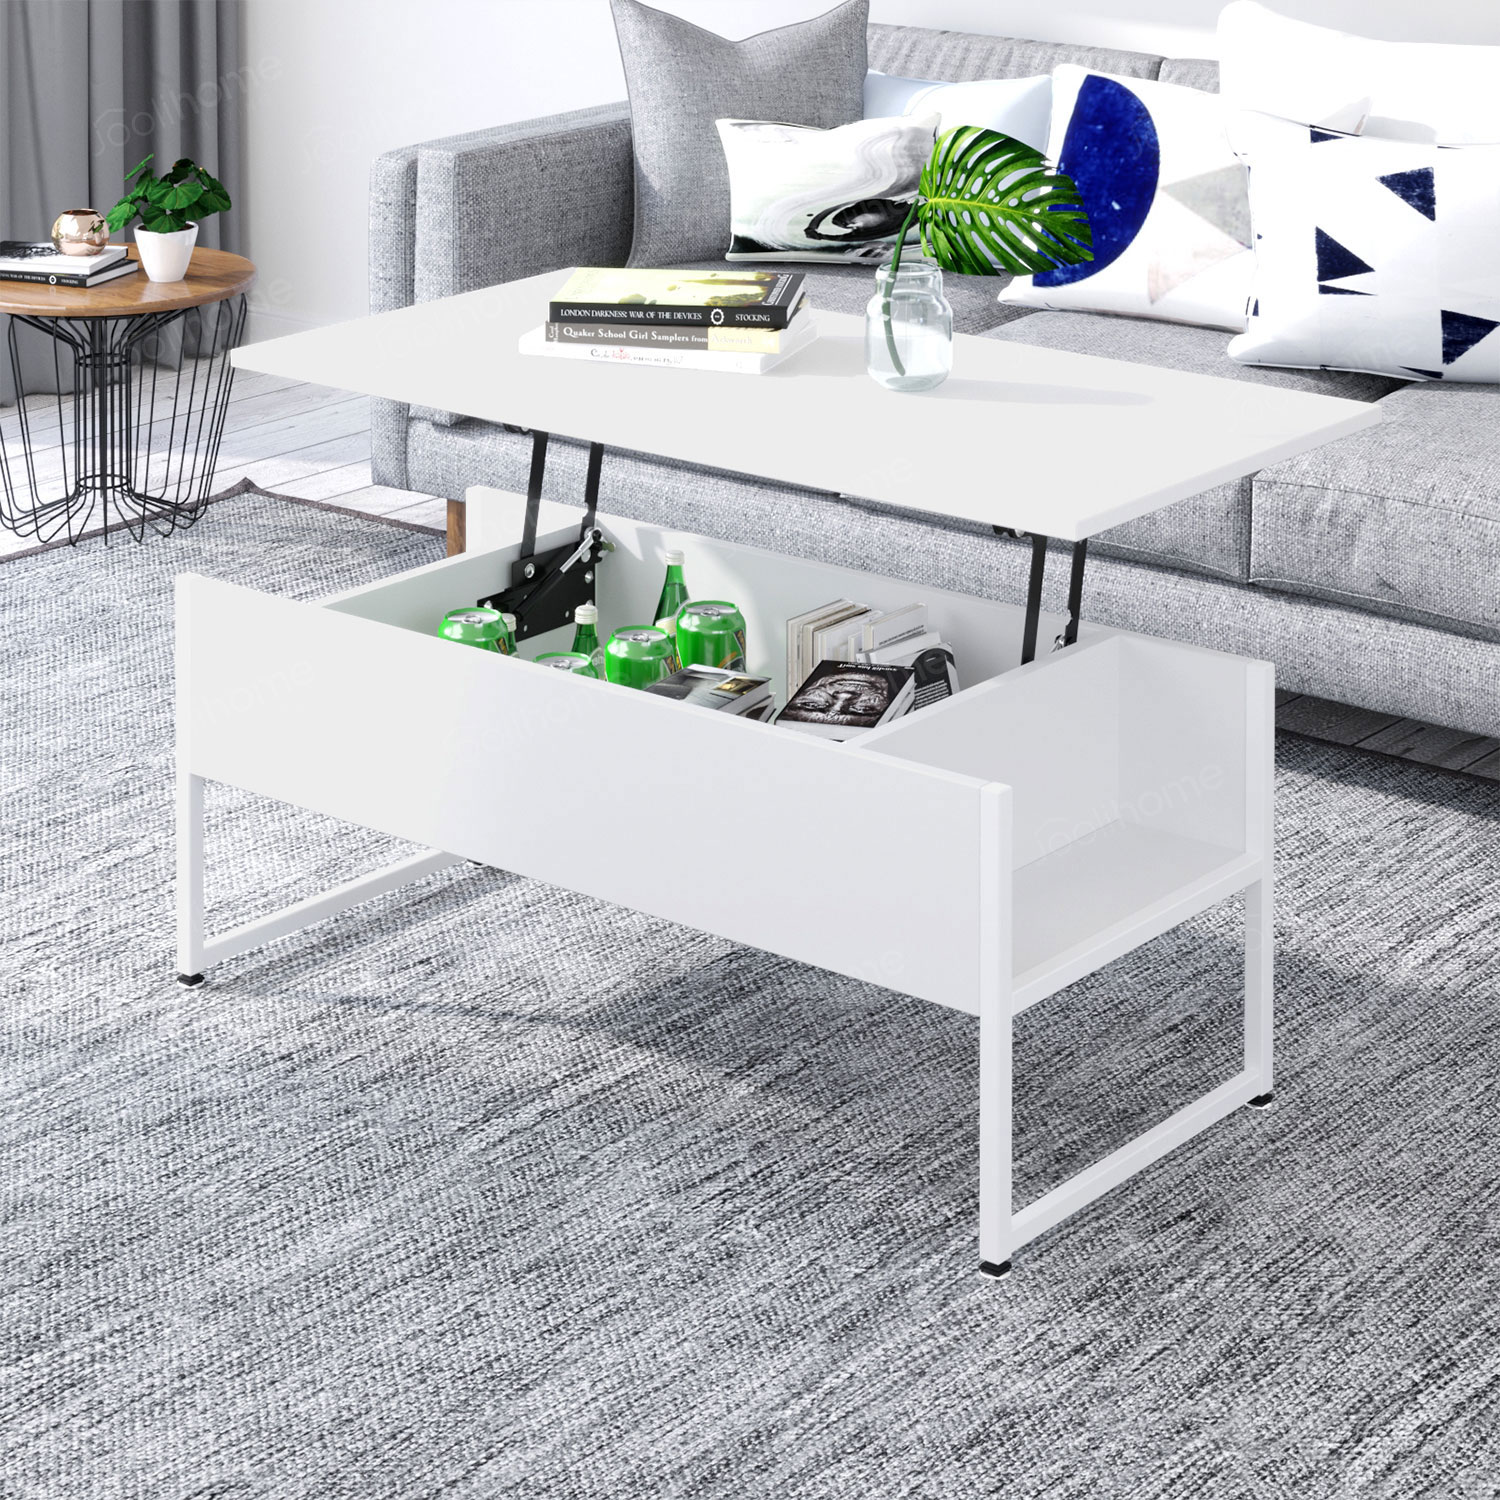 Foldable Coffee Table Dining Table Laptop Office Desk ...